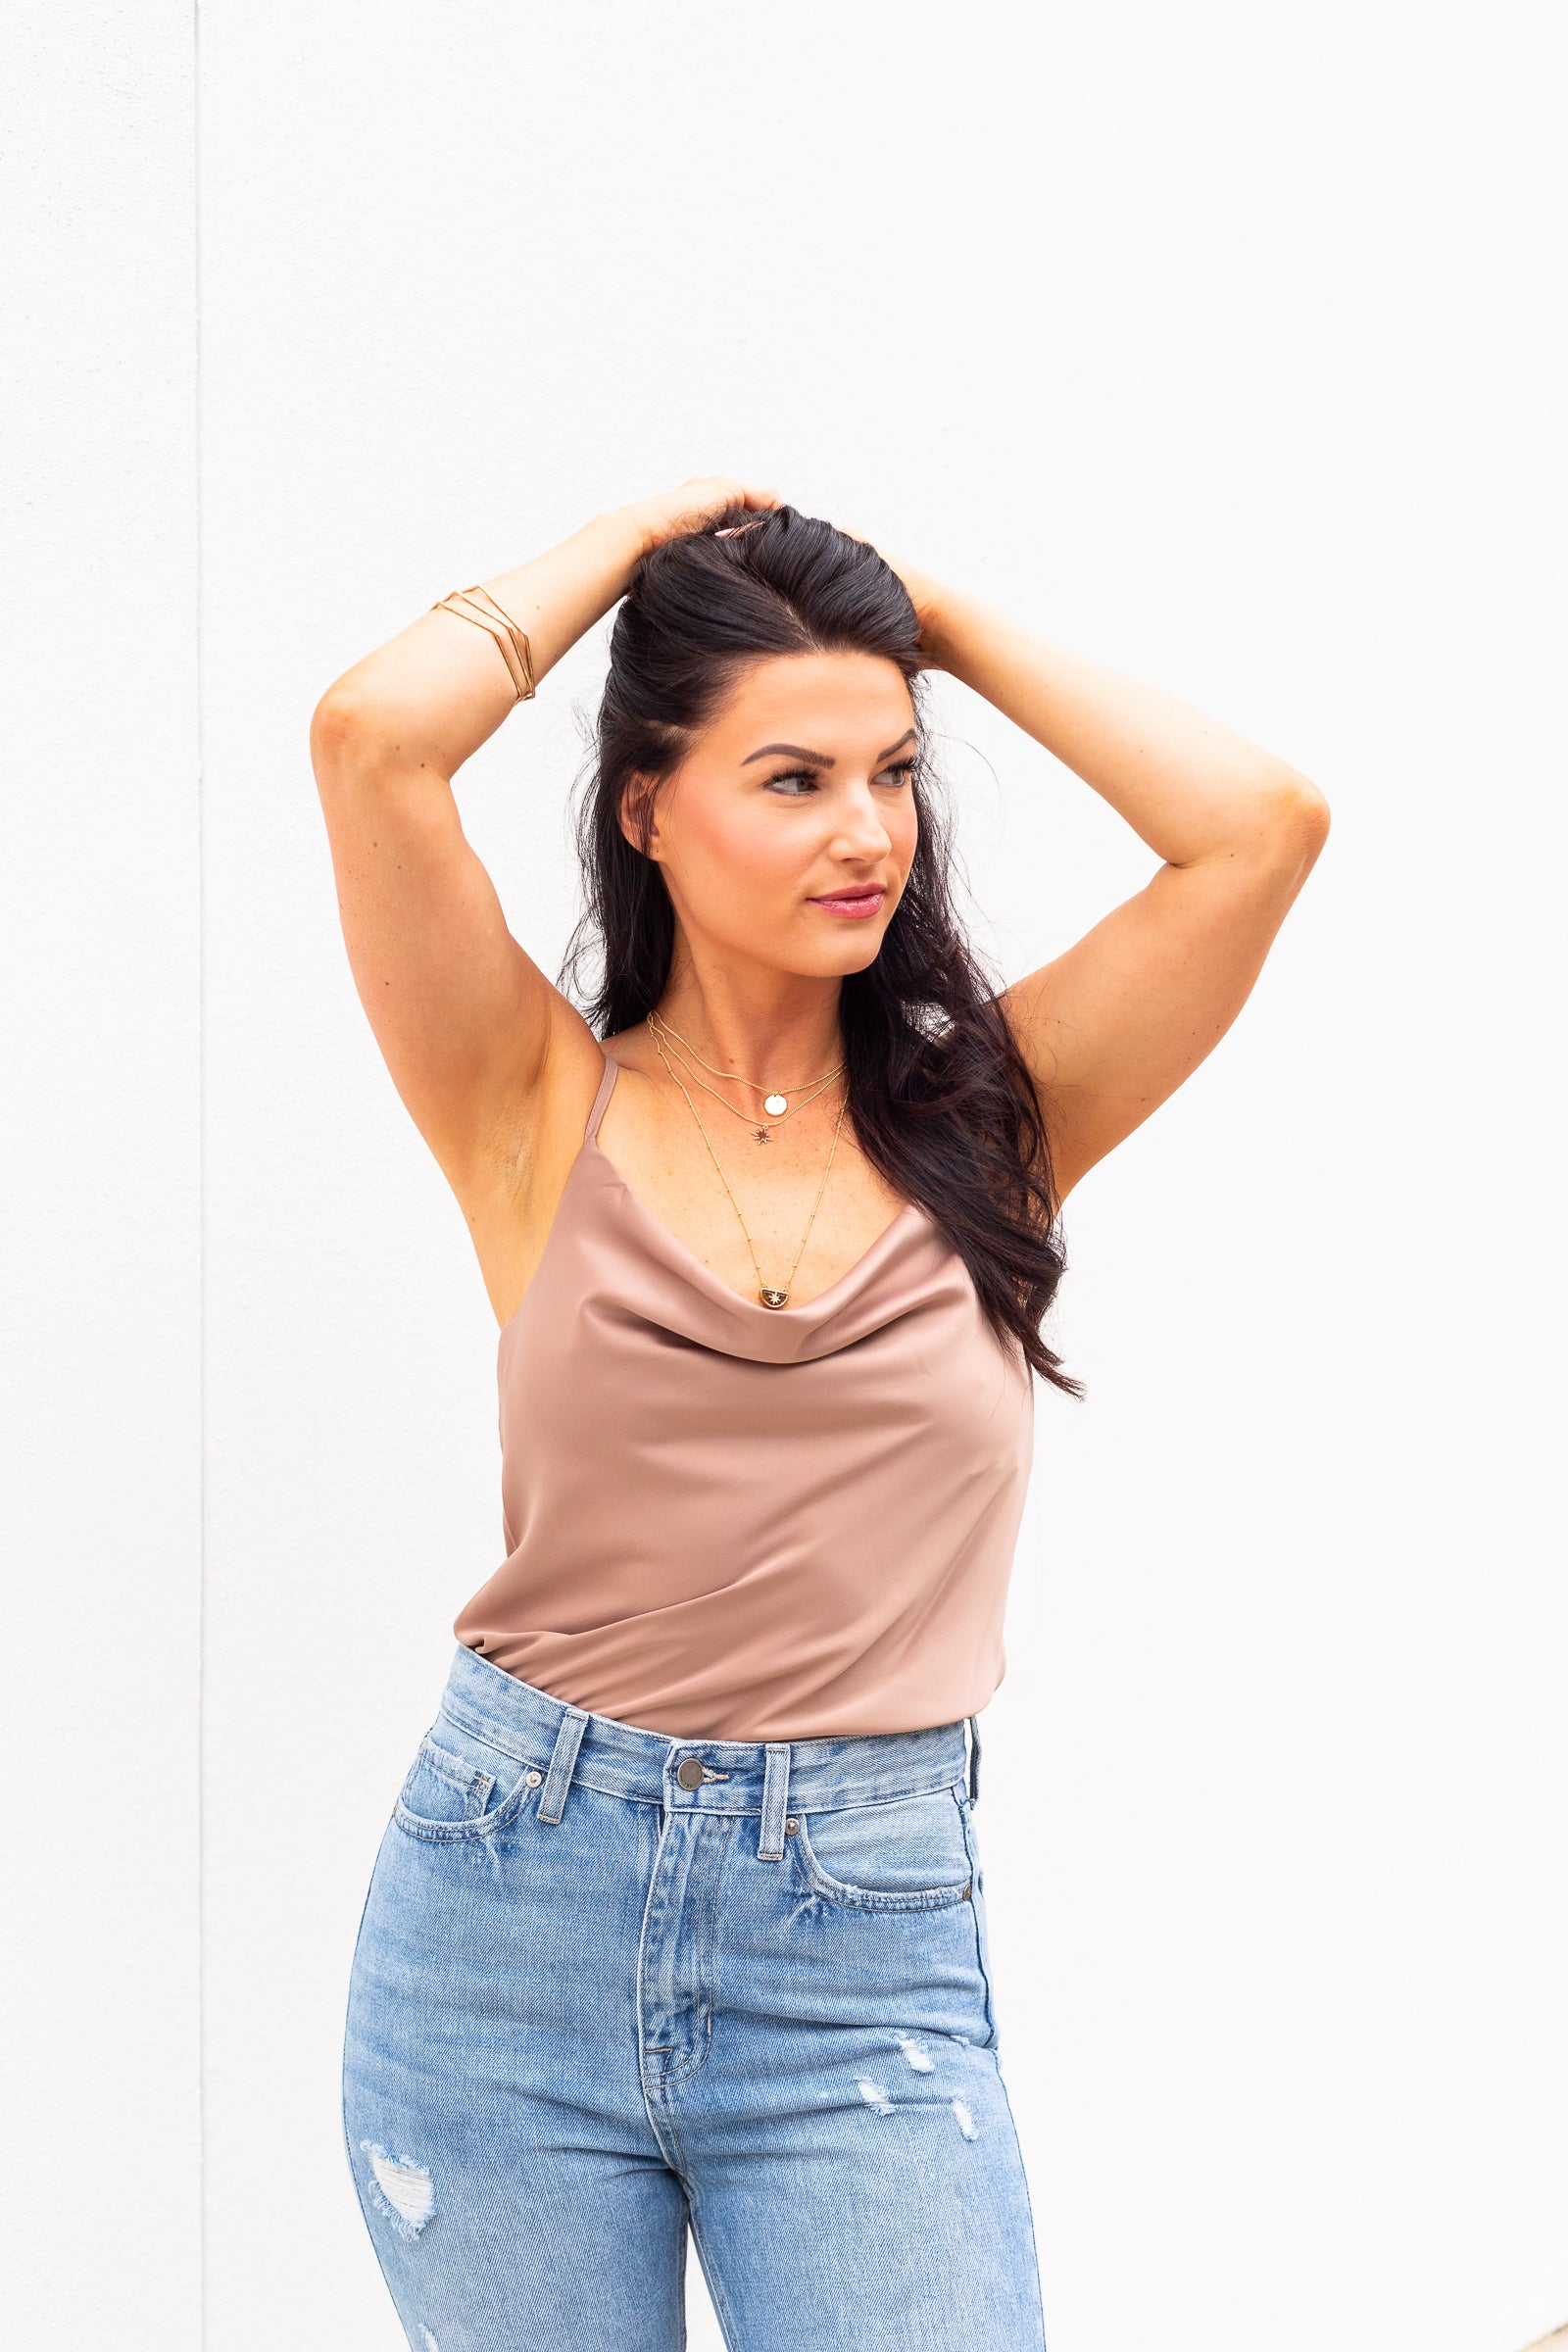 This lightweight tank top has a cowl neckline that drapes your chest, skinny adjustable straps, and flows into a relaxed bodice.